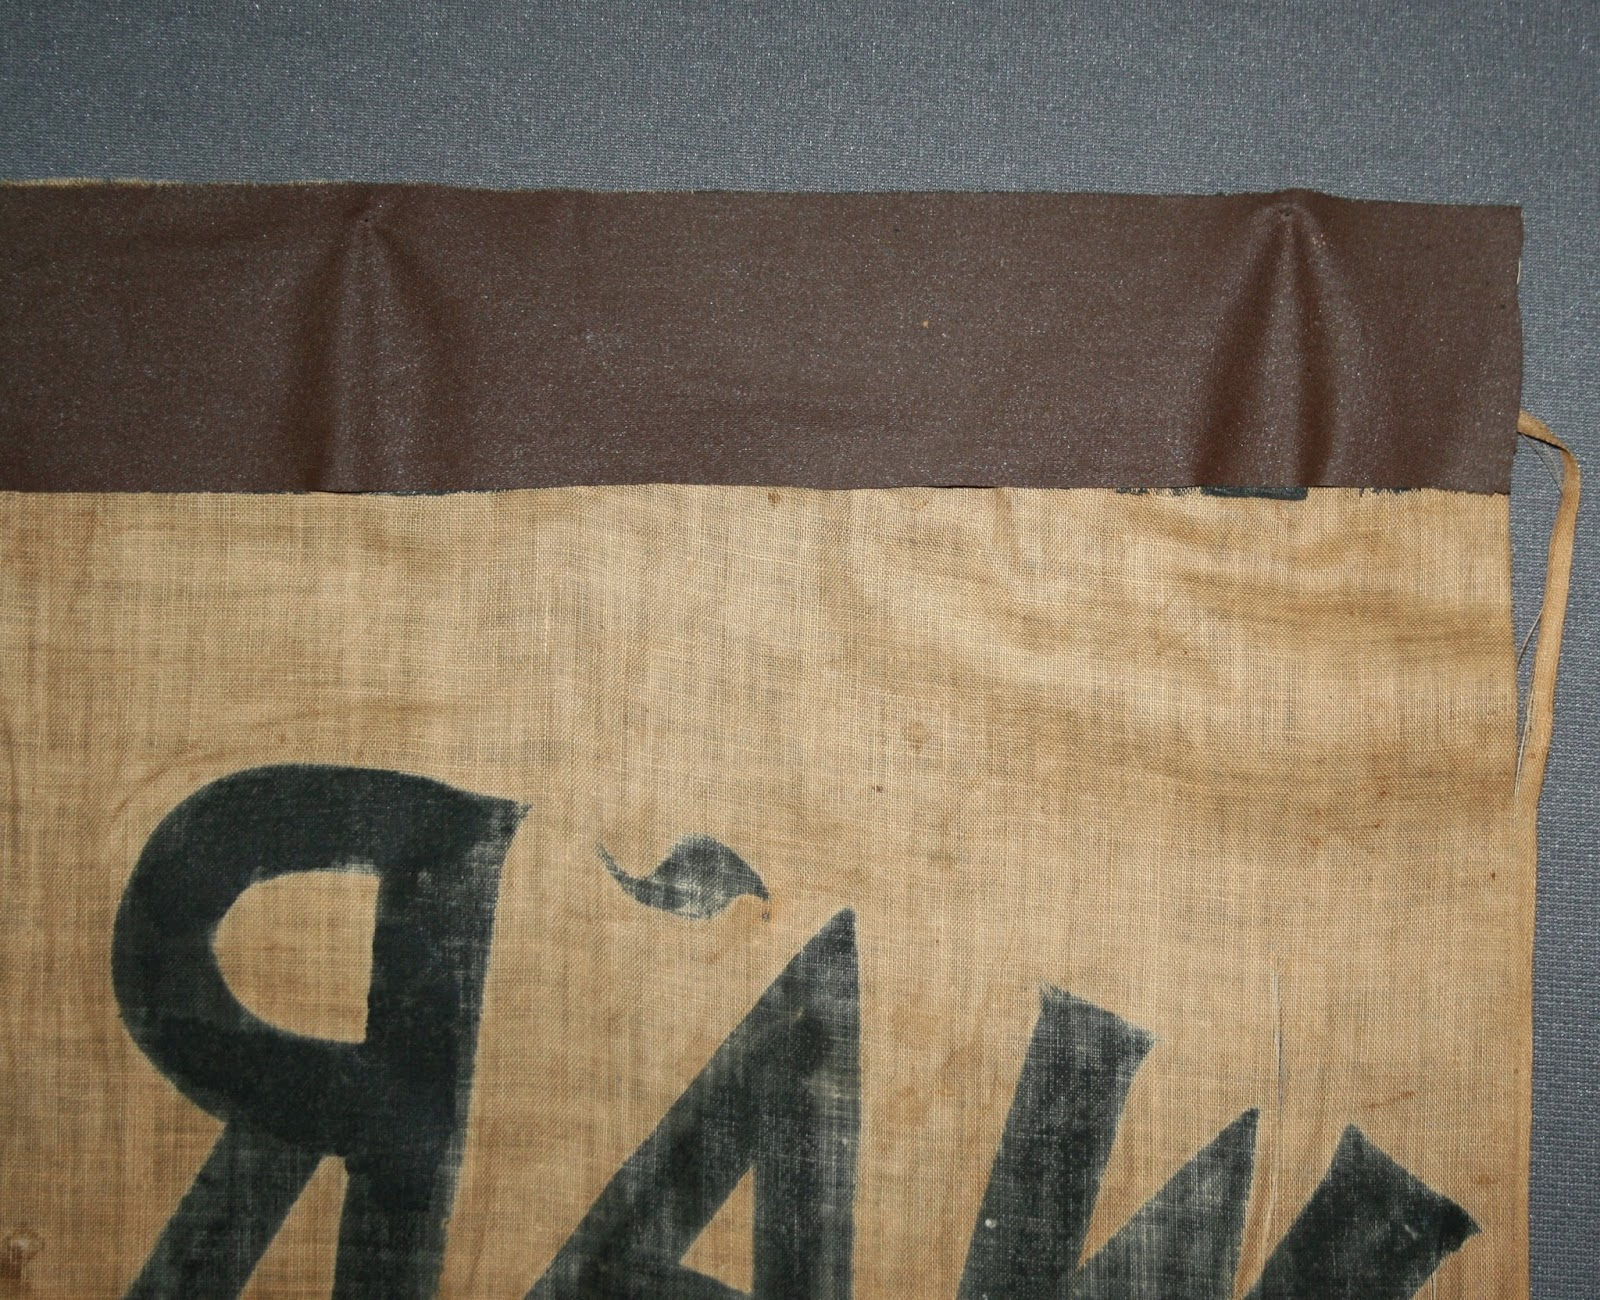 old repair to civil war banner, art conservator needed, preservation repair and conservation of historic textile